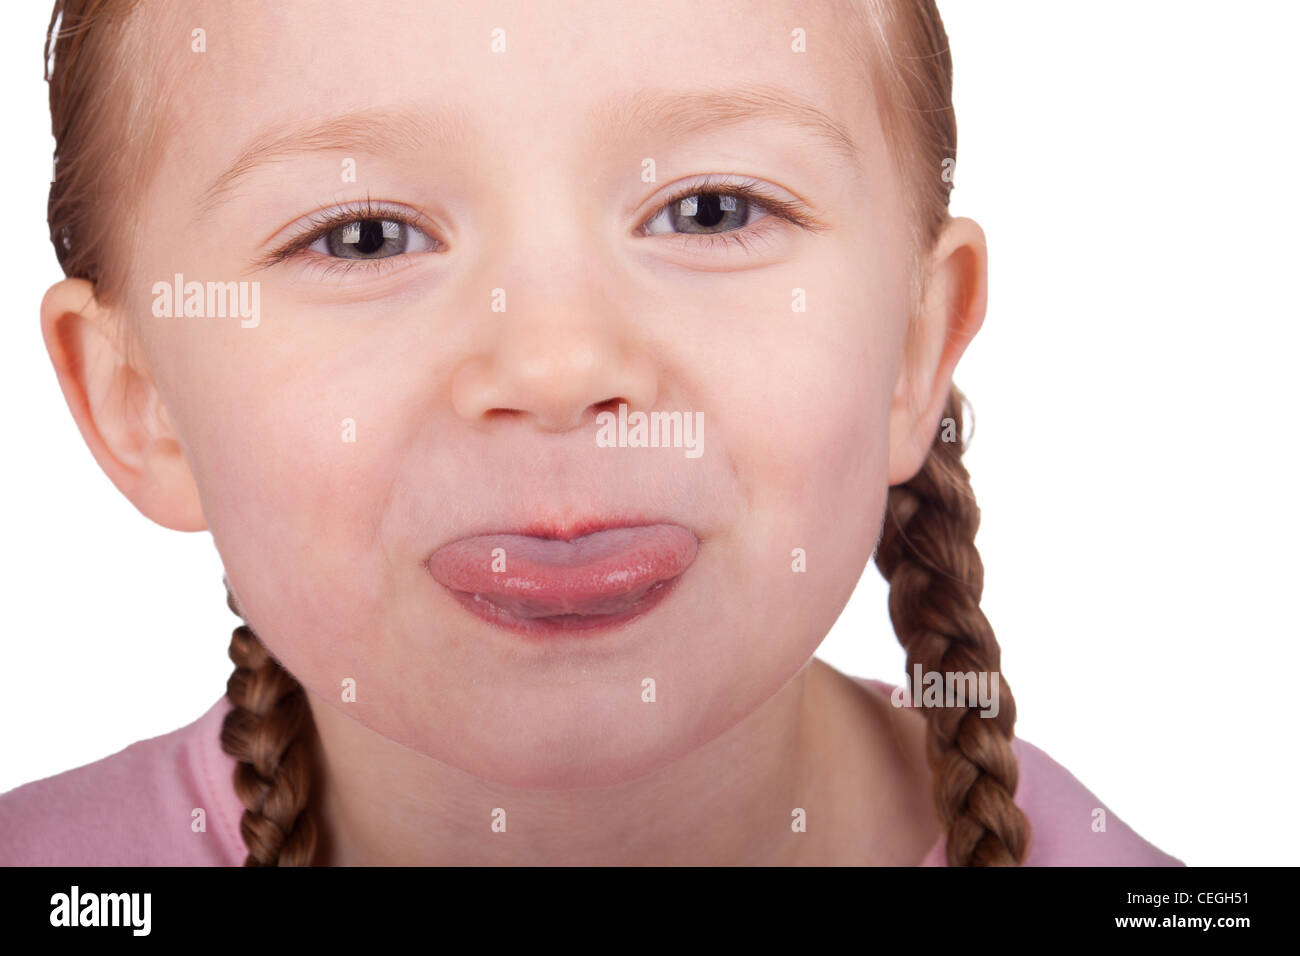 Macro image of a girl sticking her tongue out Stock Photo